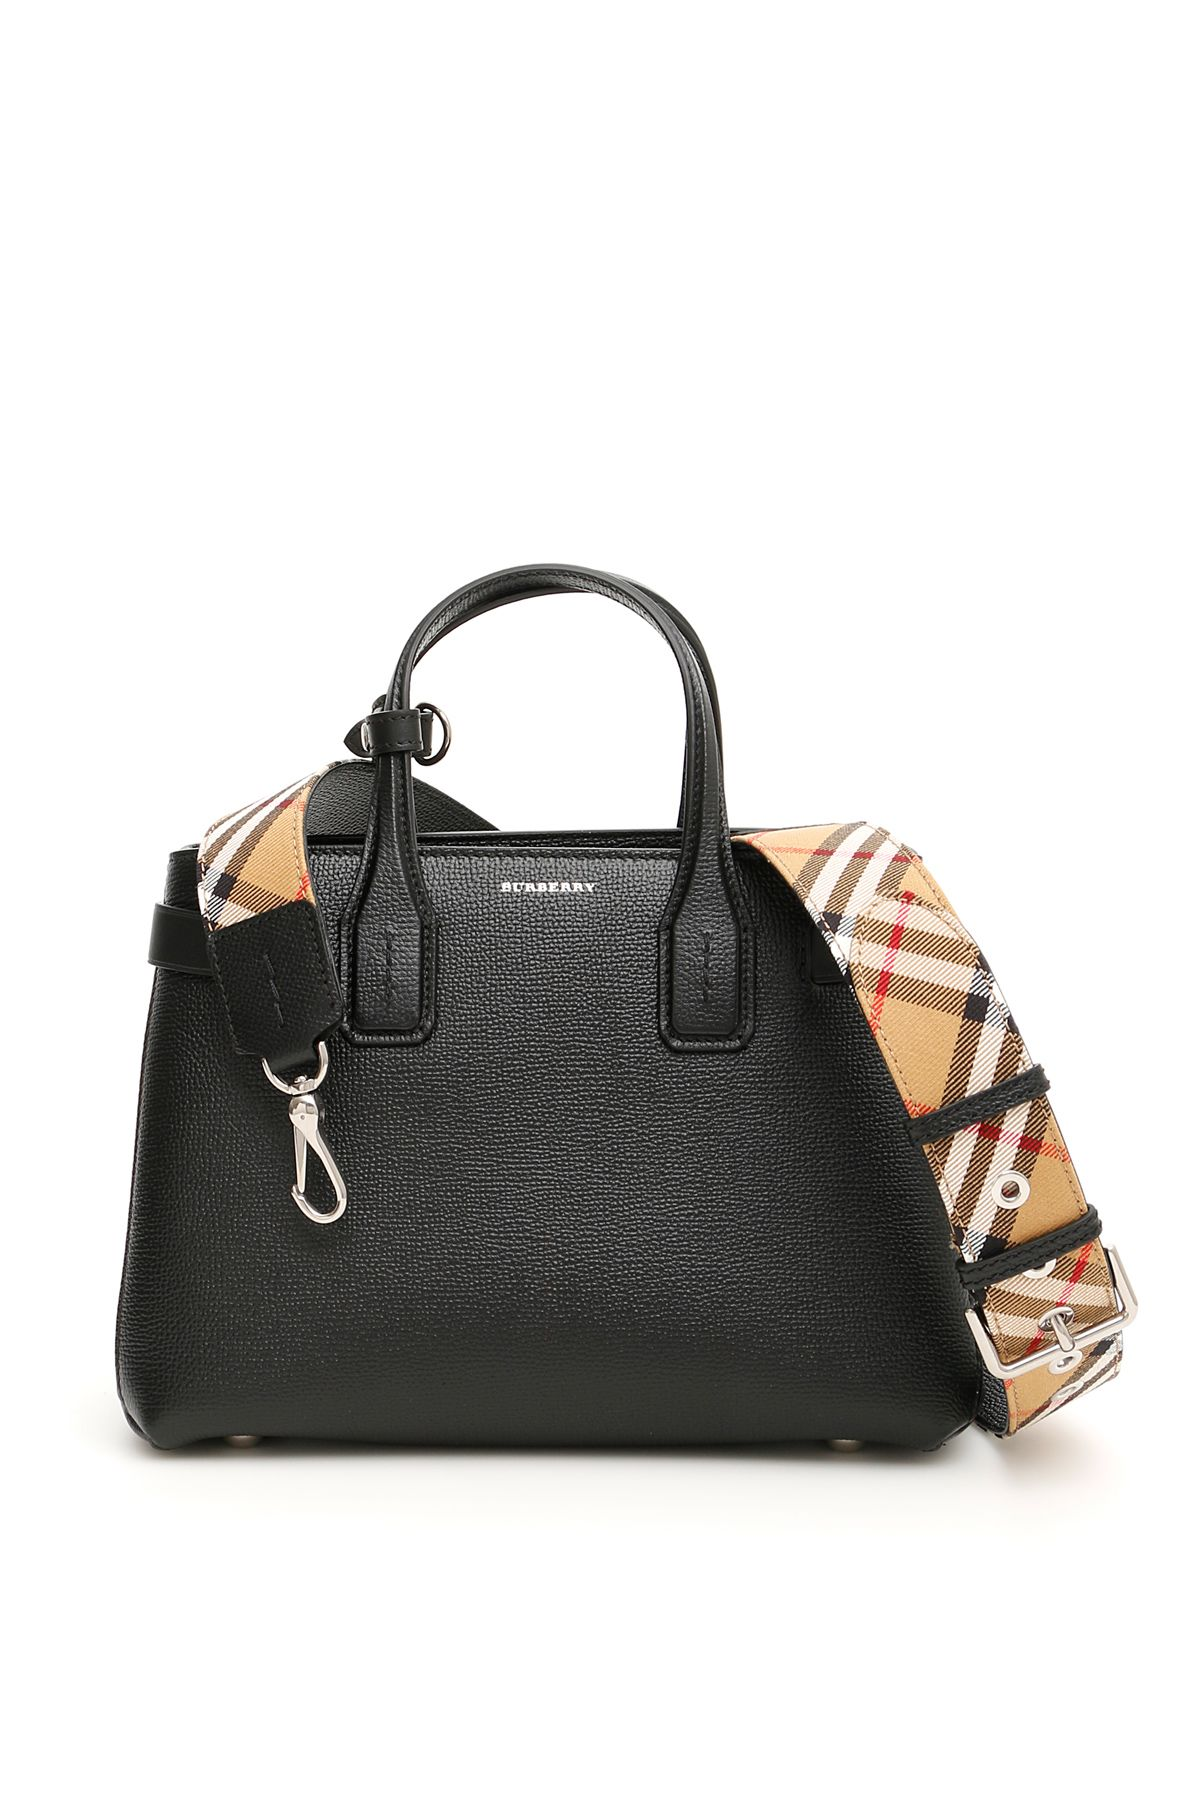 01ae3e9c798a Burberry Small Banner Bag In Black